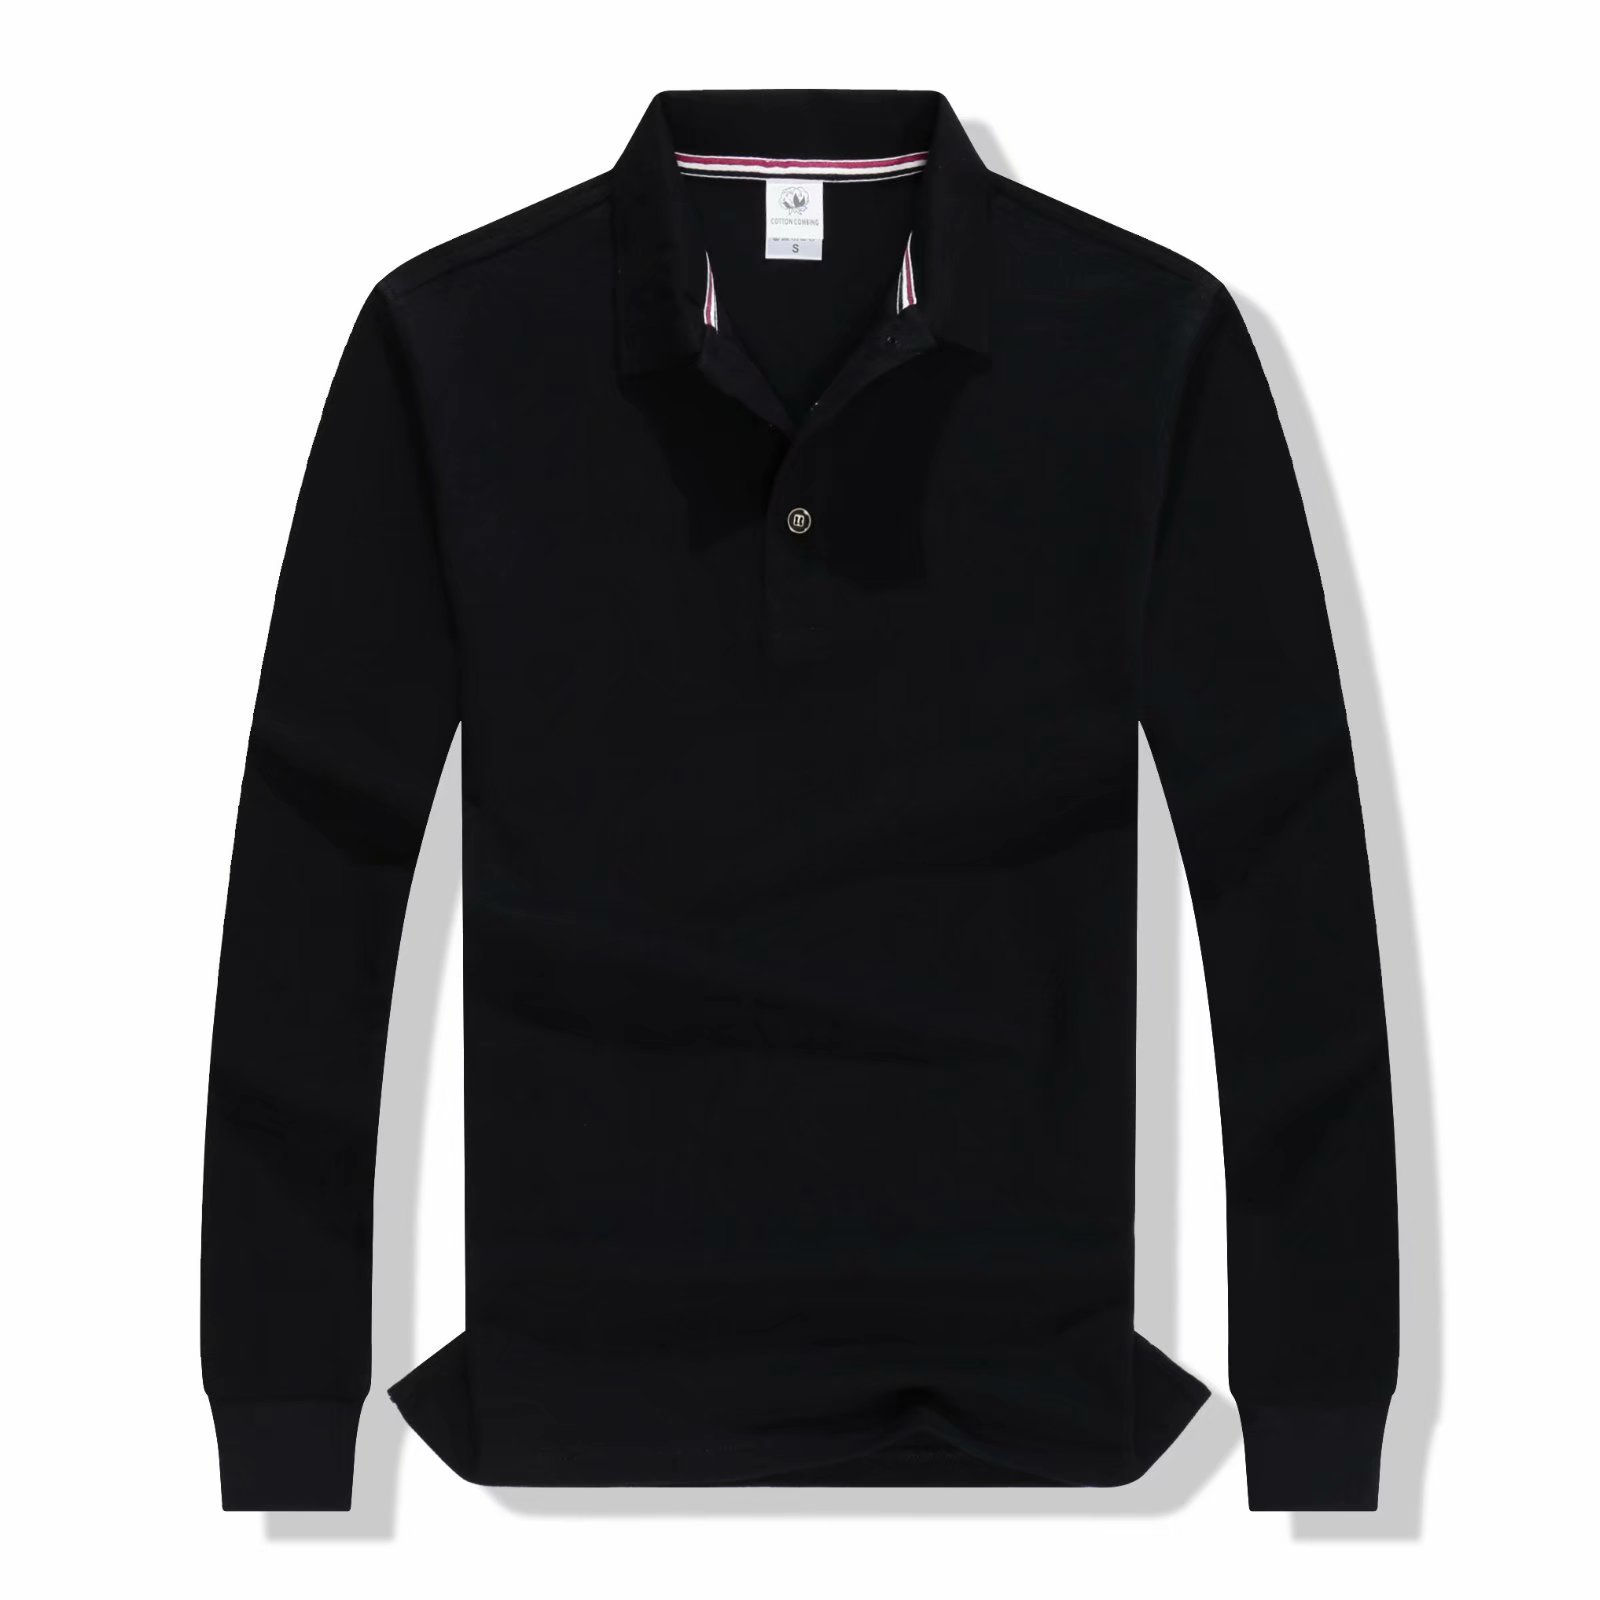 GLENN BERGER High Quality Solid Cotton Polo Shirt Casual Polo Shirts men 39 s Long sleeve polos shirt 2019 New Arrival polosshirt in Polo from Men 39 s Clothing